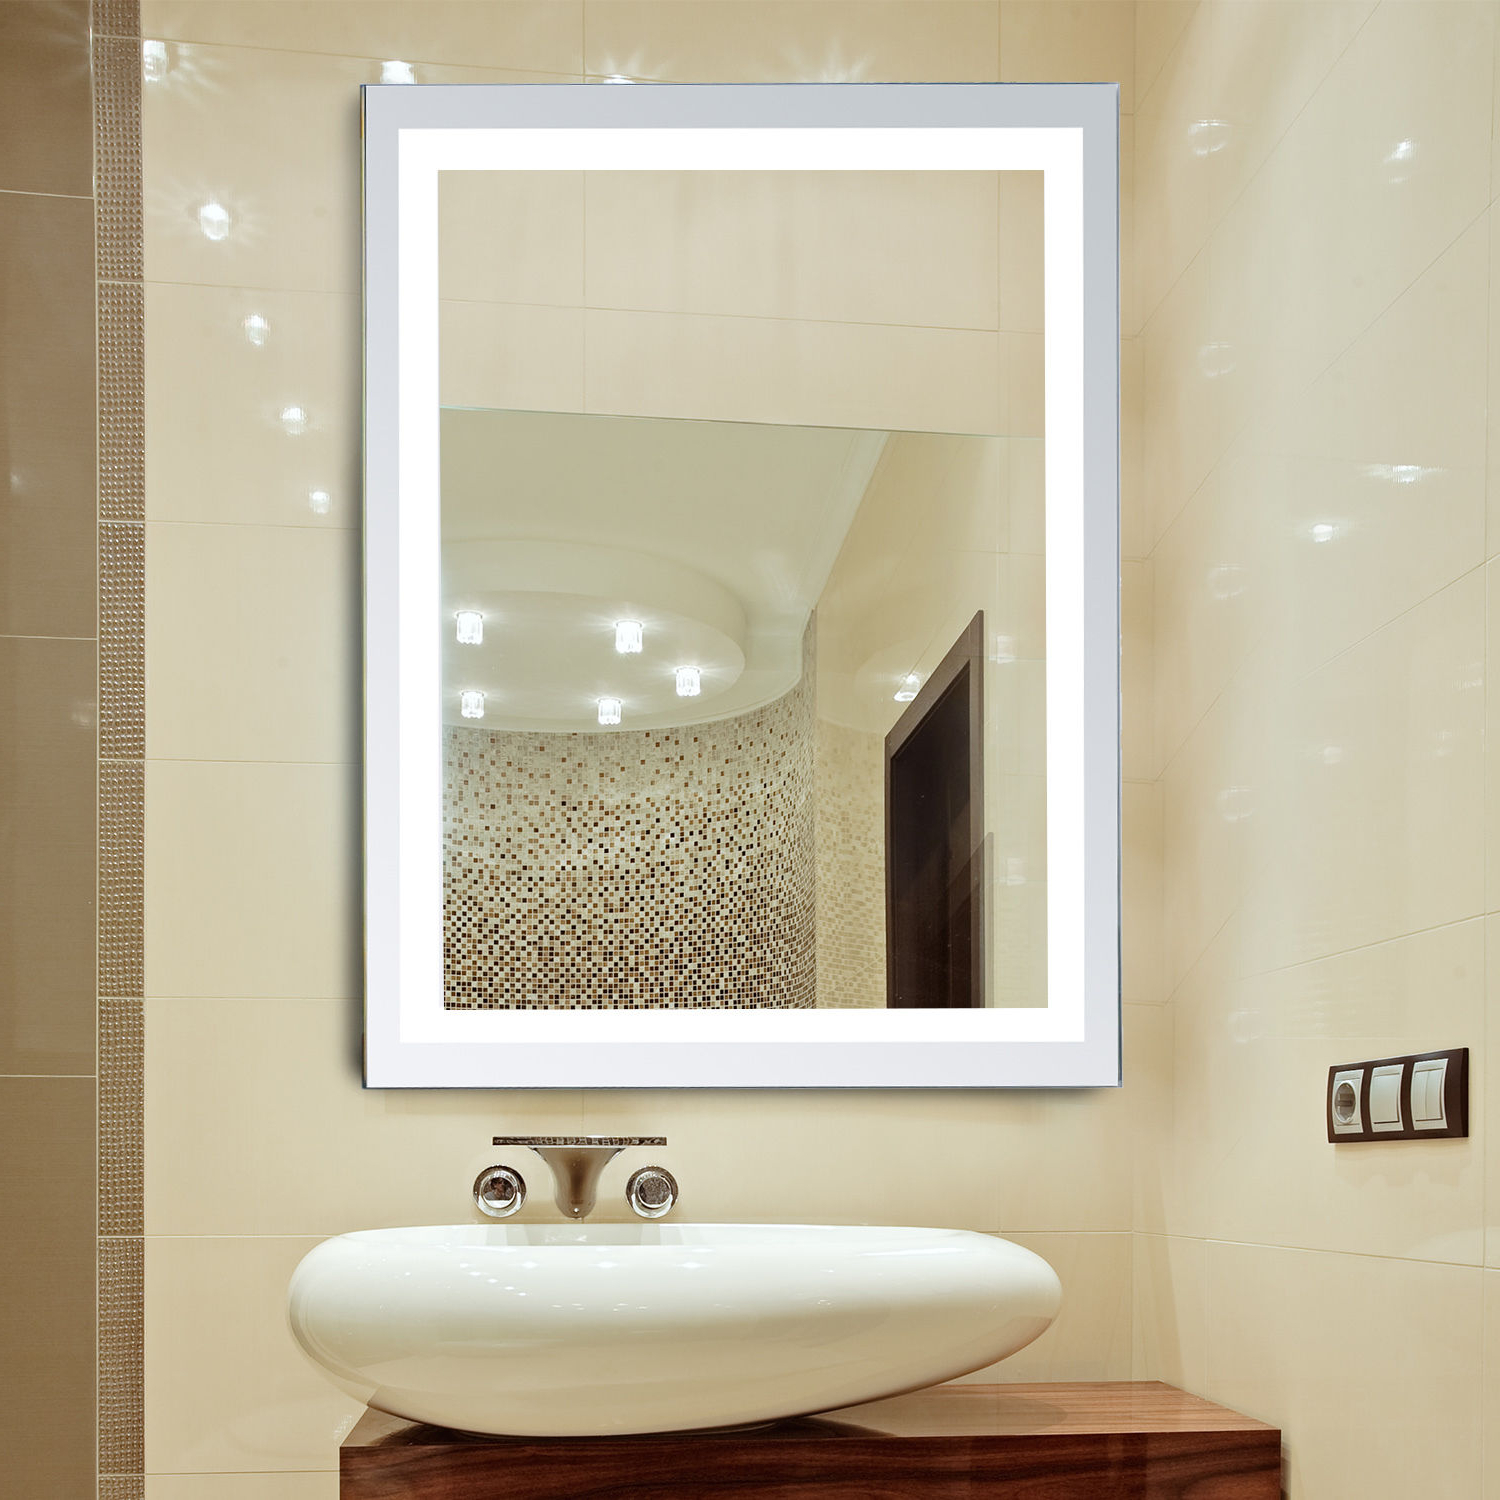 Details About Led Illuminated Bathroom Wall Mirrors With Lights Modern Makeup Vanity Mirror Intended For Well Known Led Wall Mirrors (View 4 of 20)